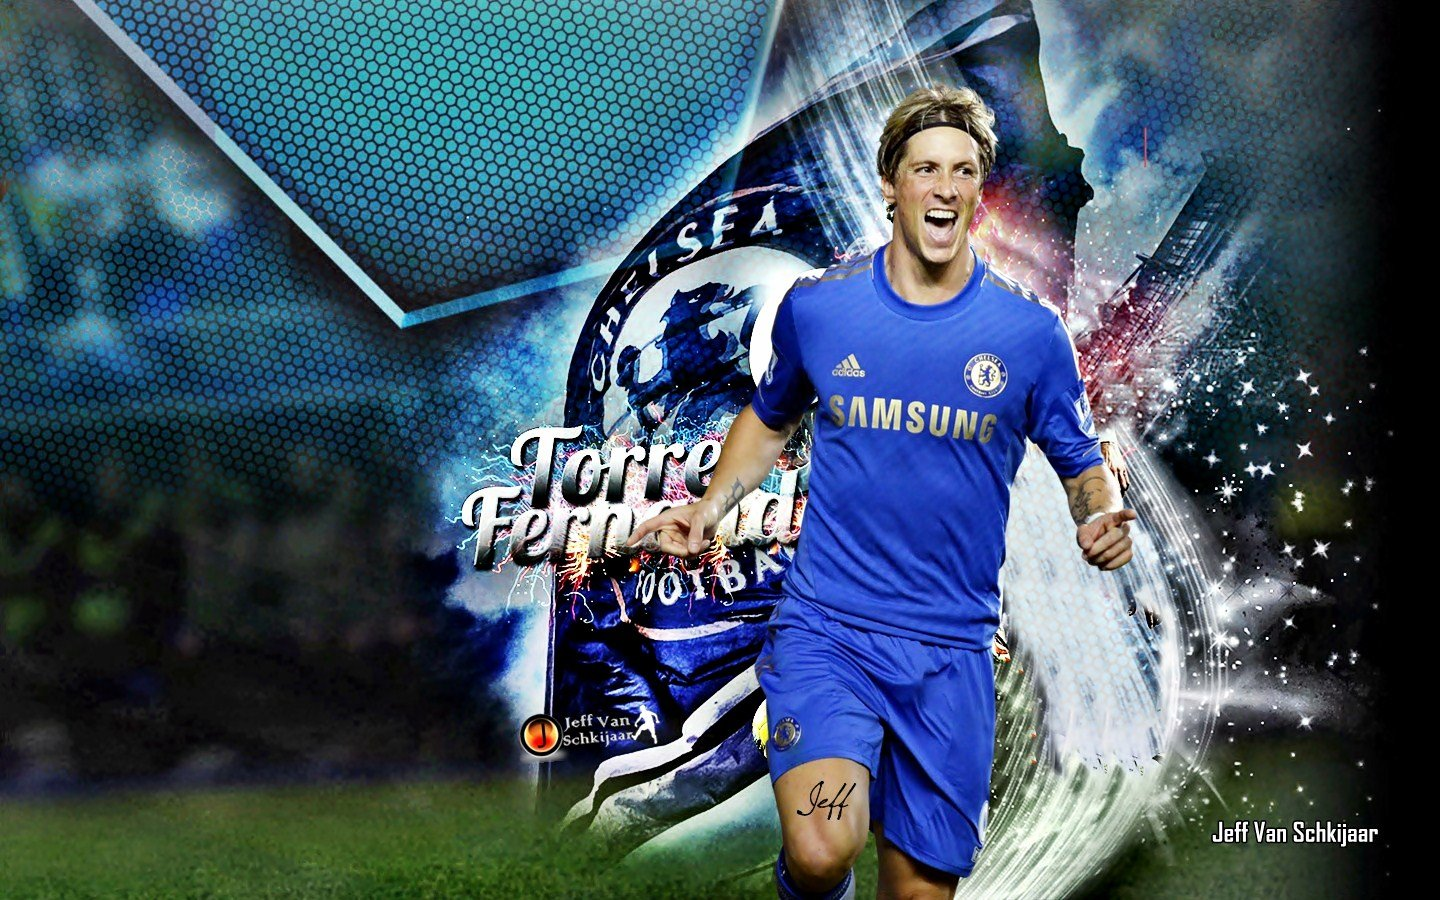 Top Scorer Fernando Torres 2012 Wallpapers Its All About Wallpapers 1440x900